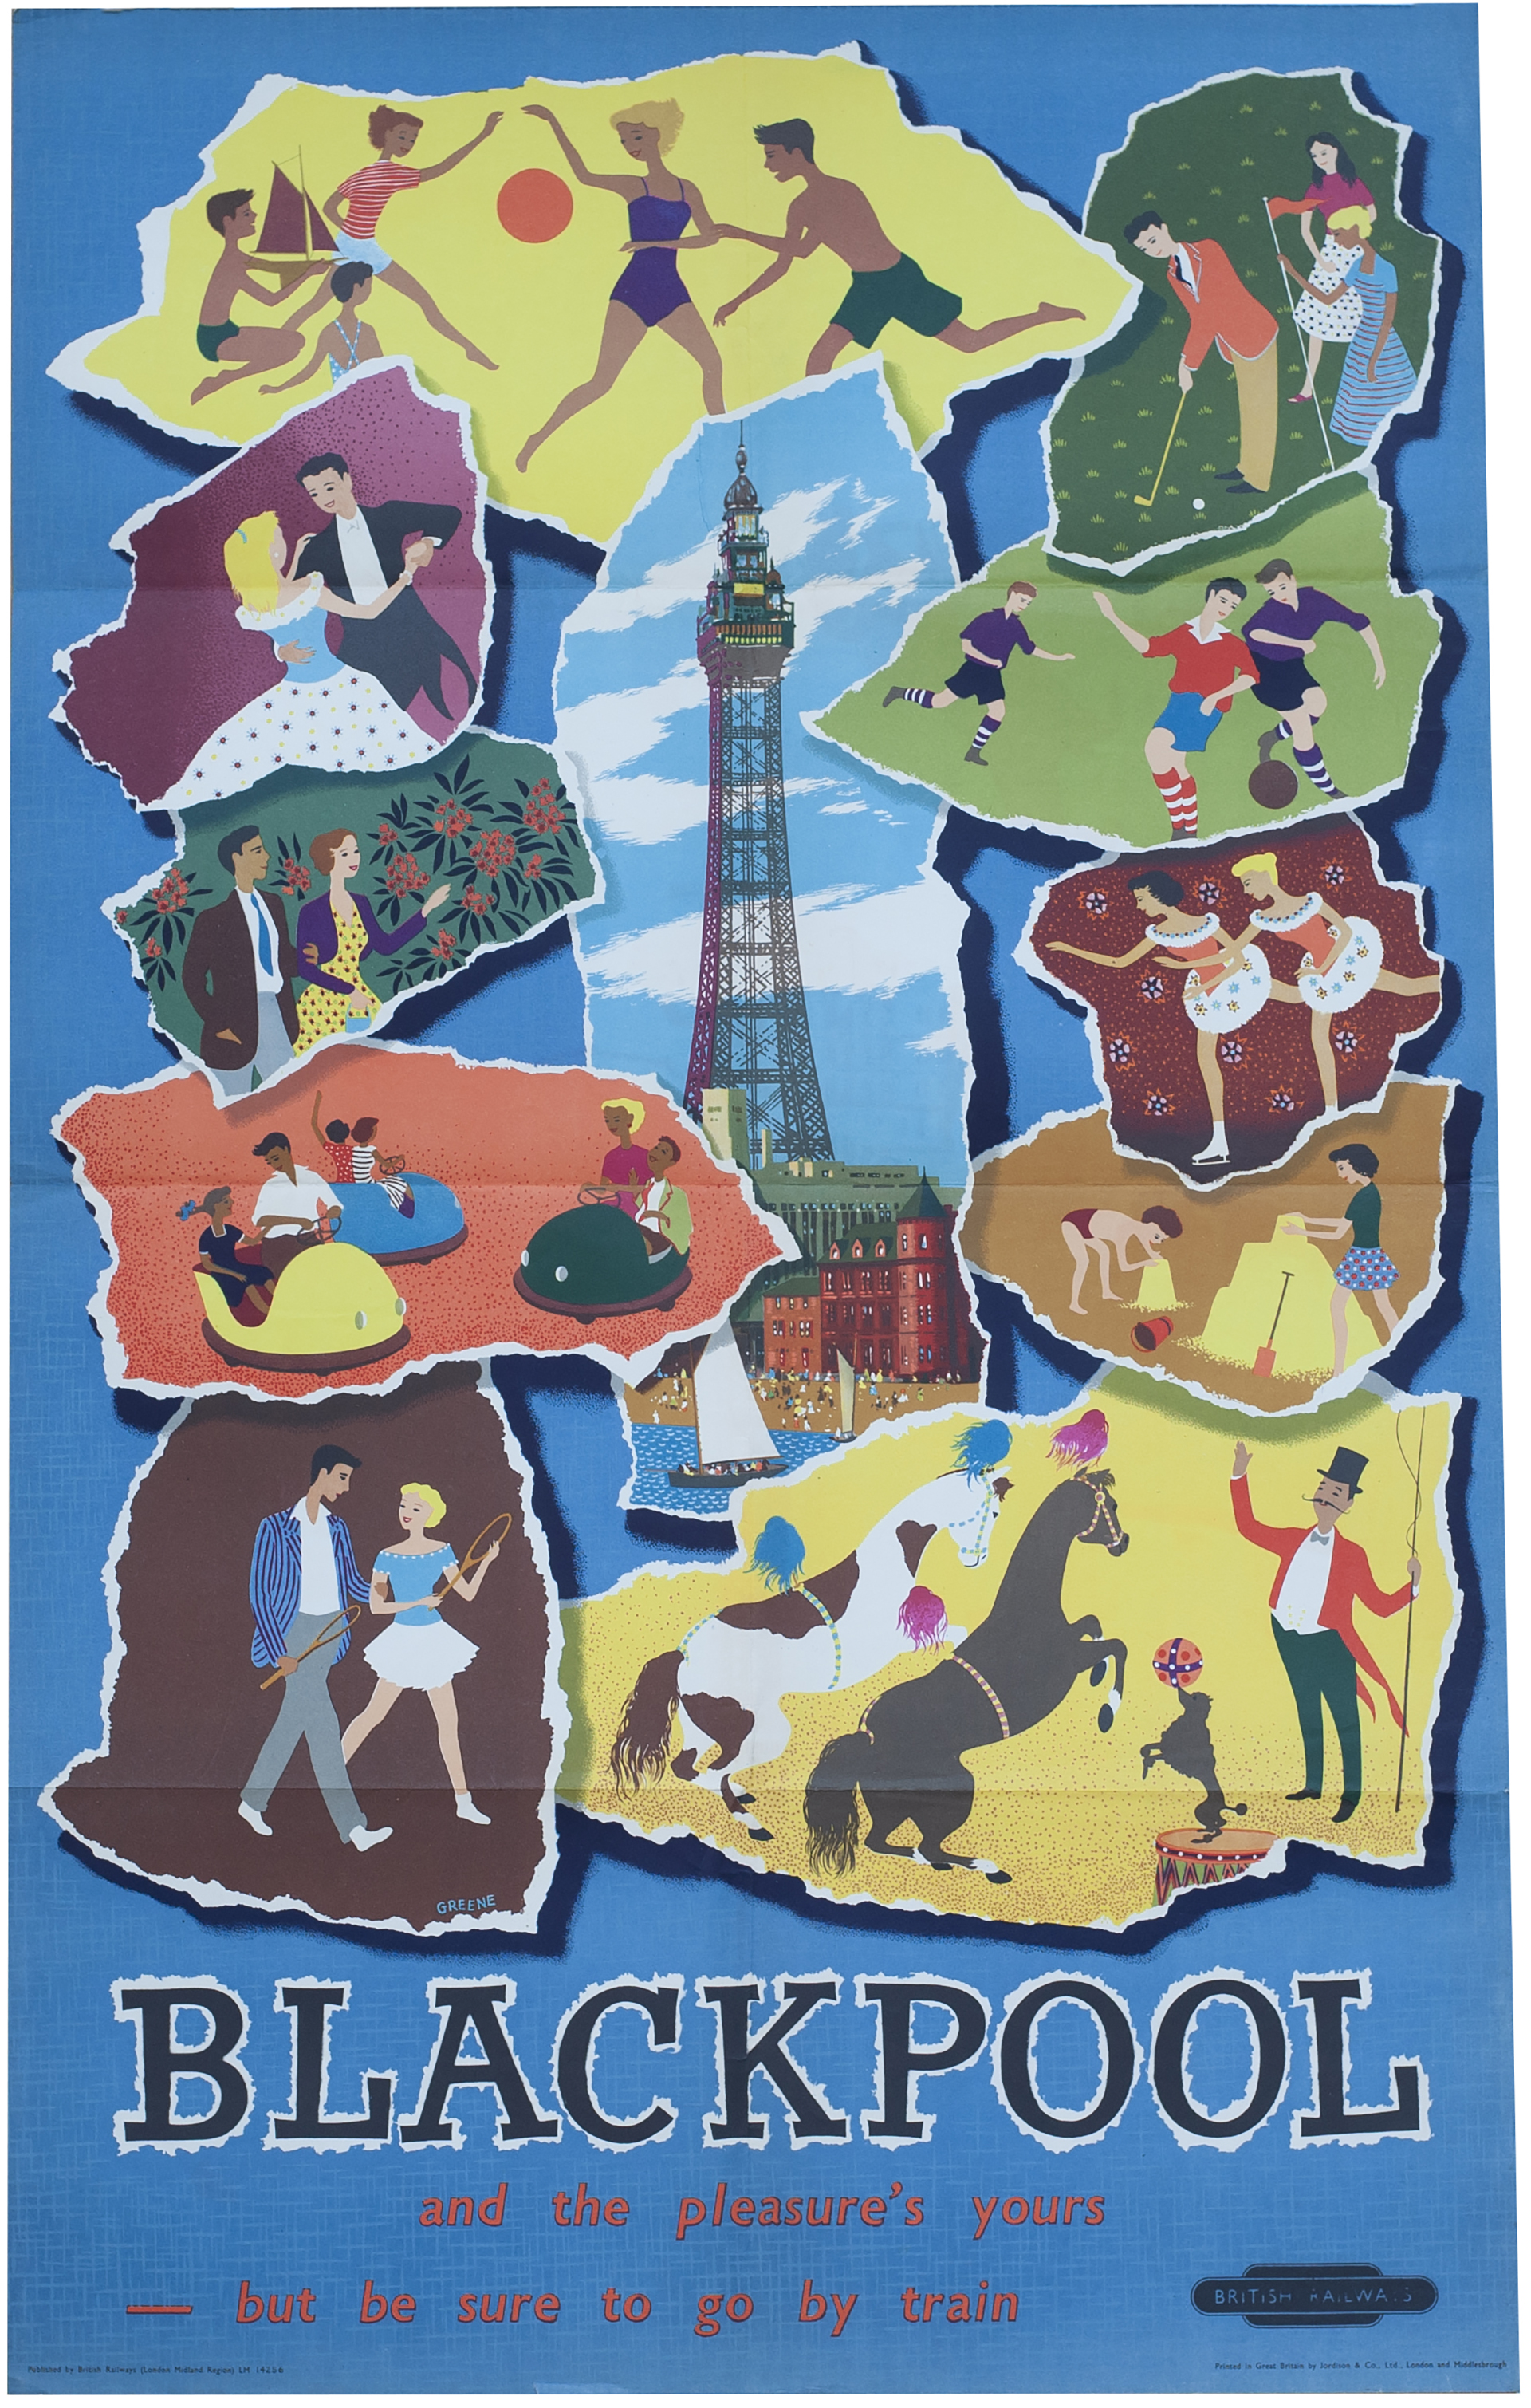 Poster BR(M) BLACKPOOL By Greene Issued In 1956.